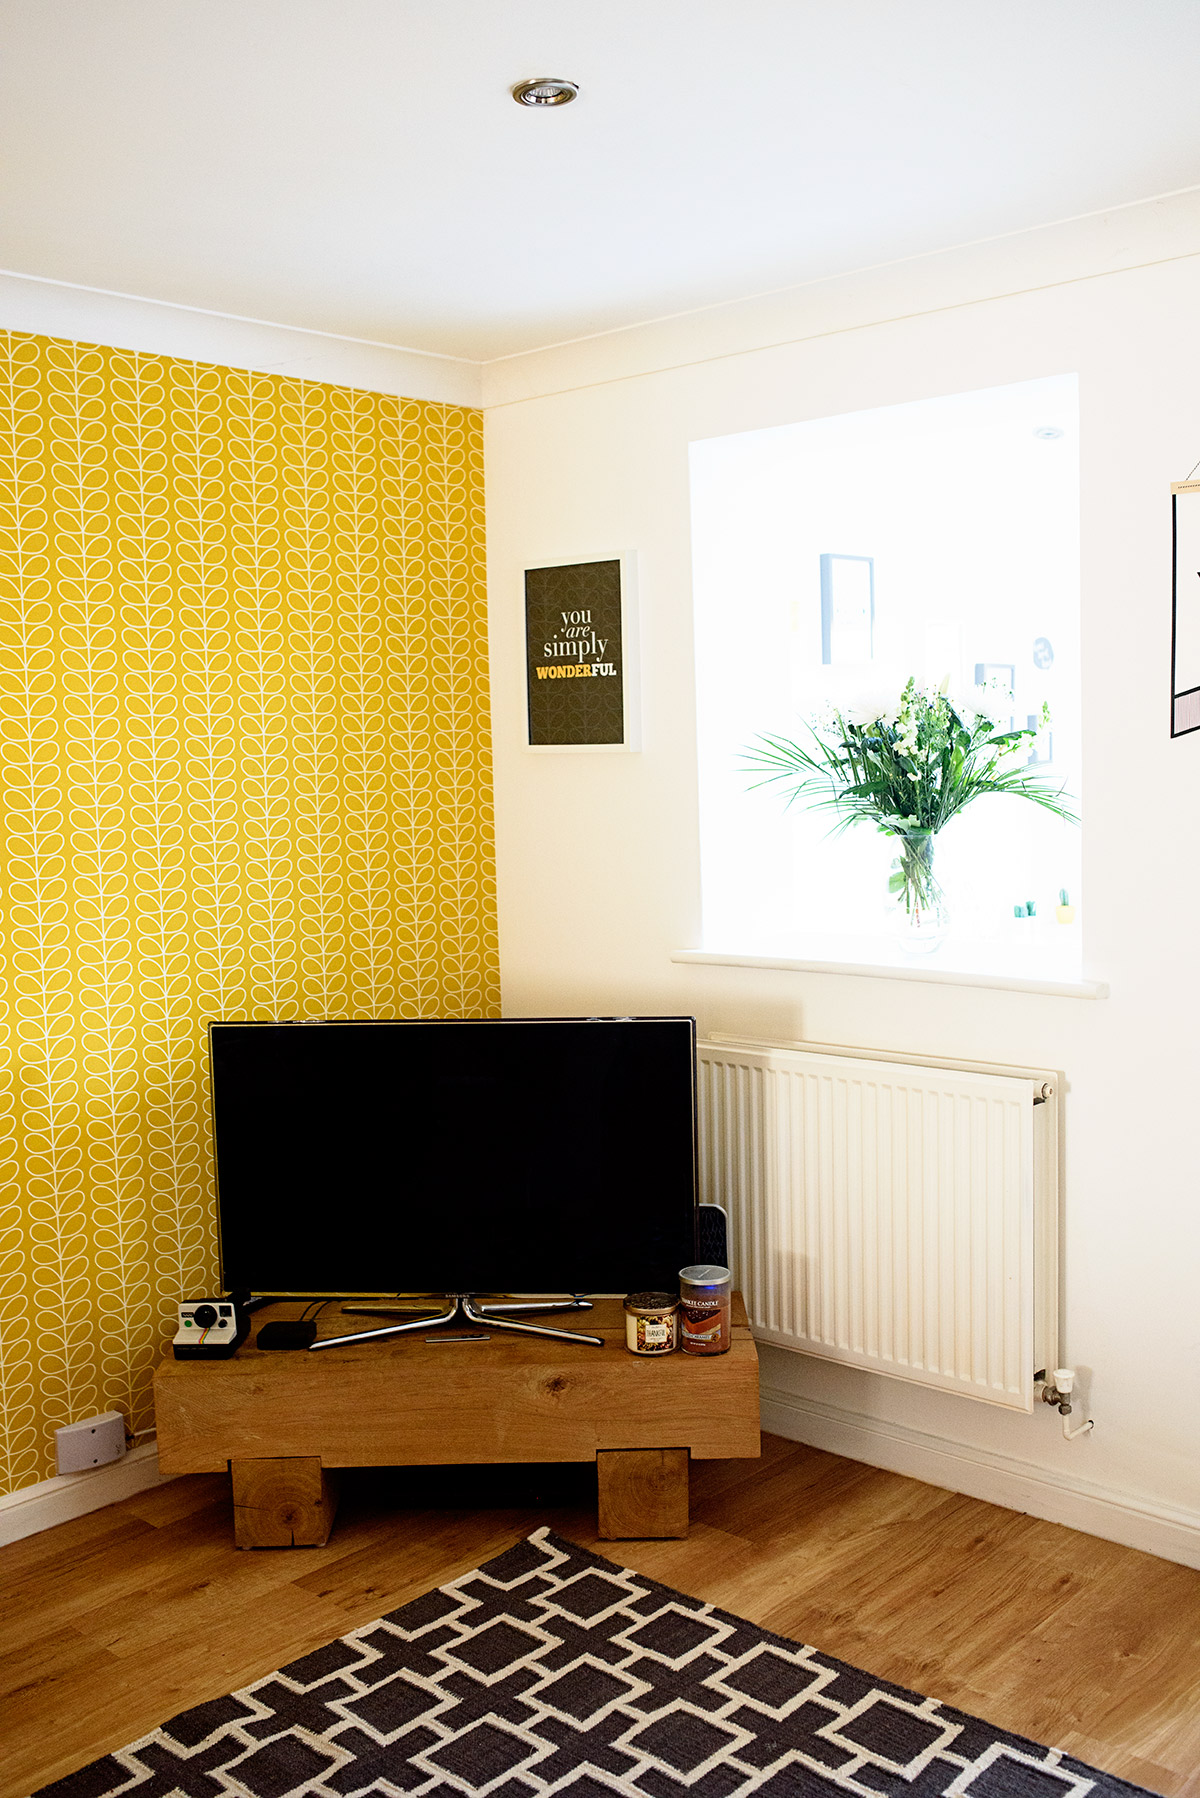 Our Living/Dining Room Makeover- Our New Extension Part One… (Our Old House)